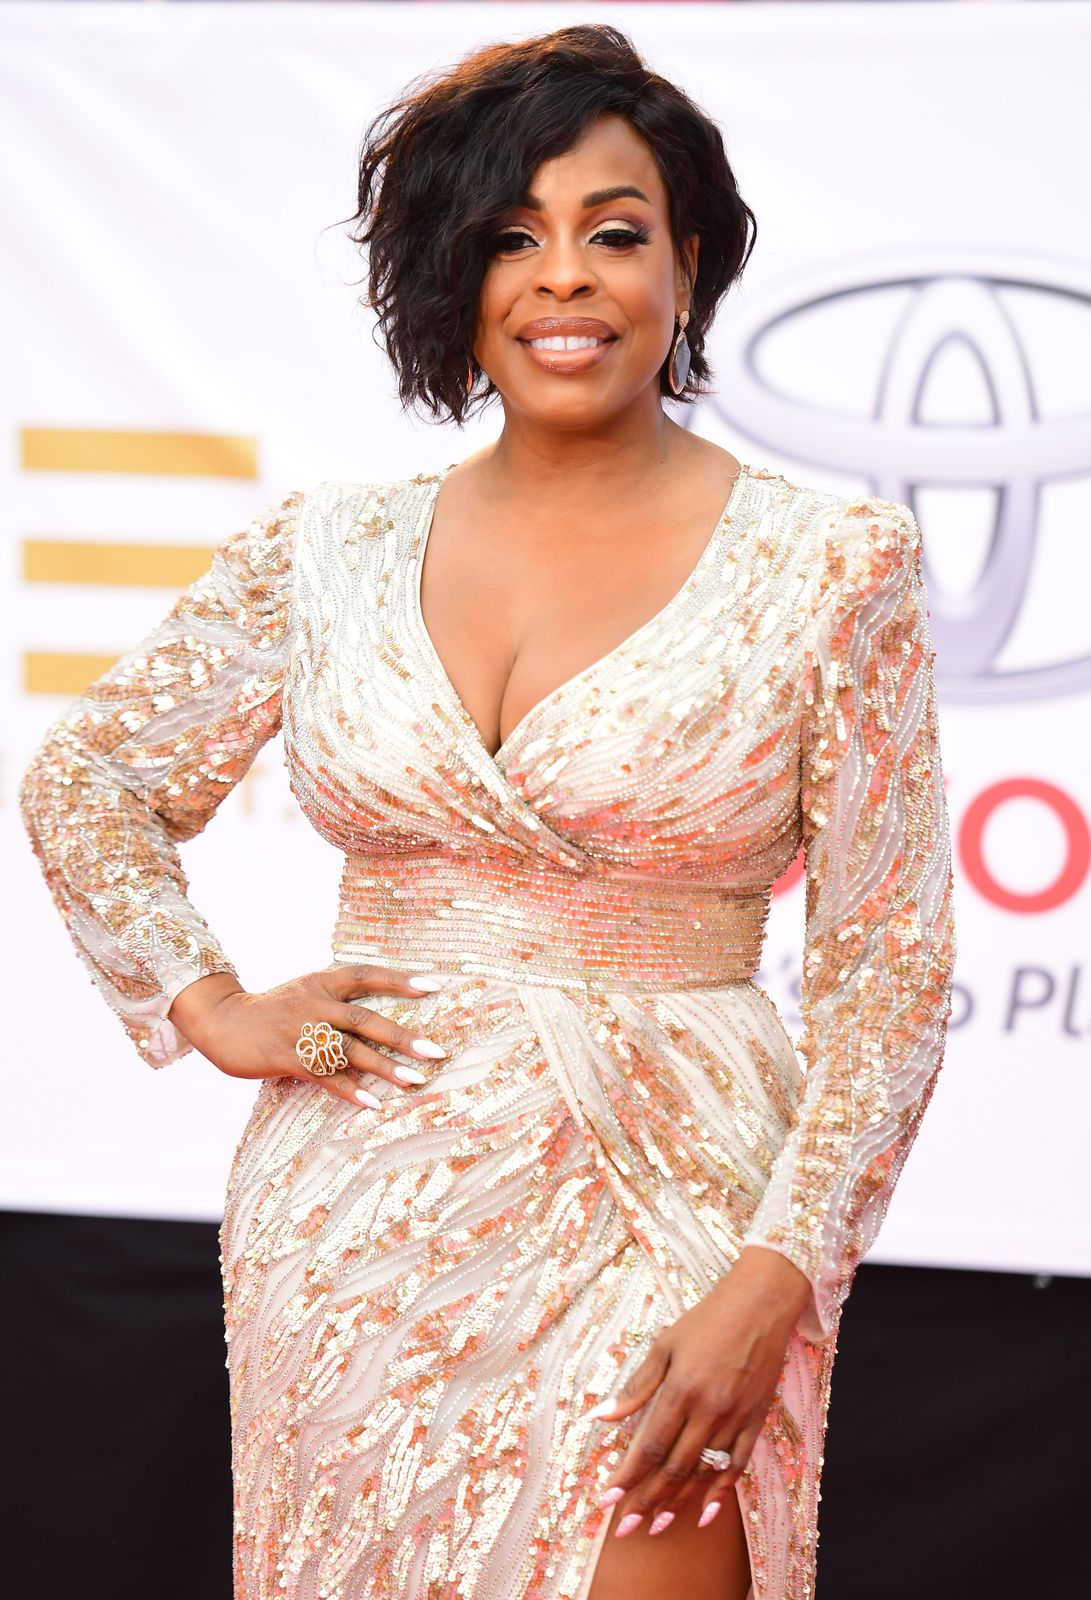 Niecy Nash attends the 49th NAACP Image Awards at Pasadena Civic Auditorium on January 15, 2018. | Source: Getty Images